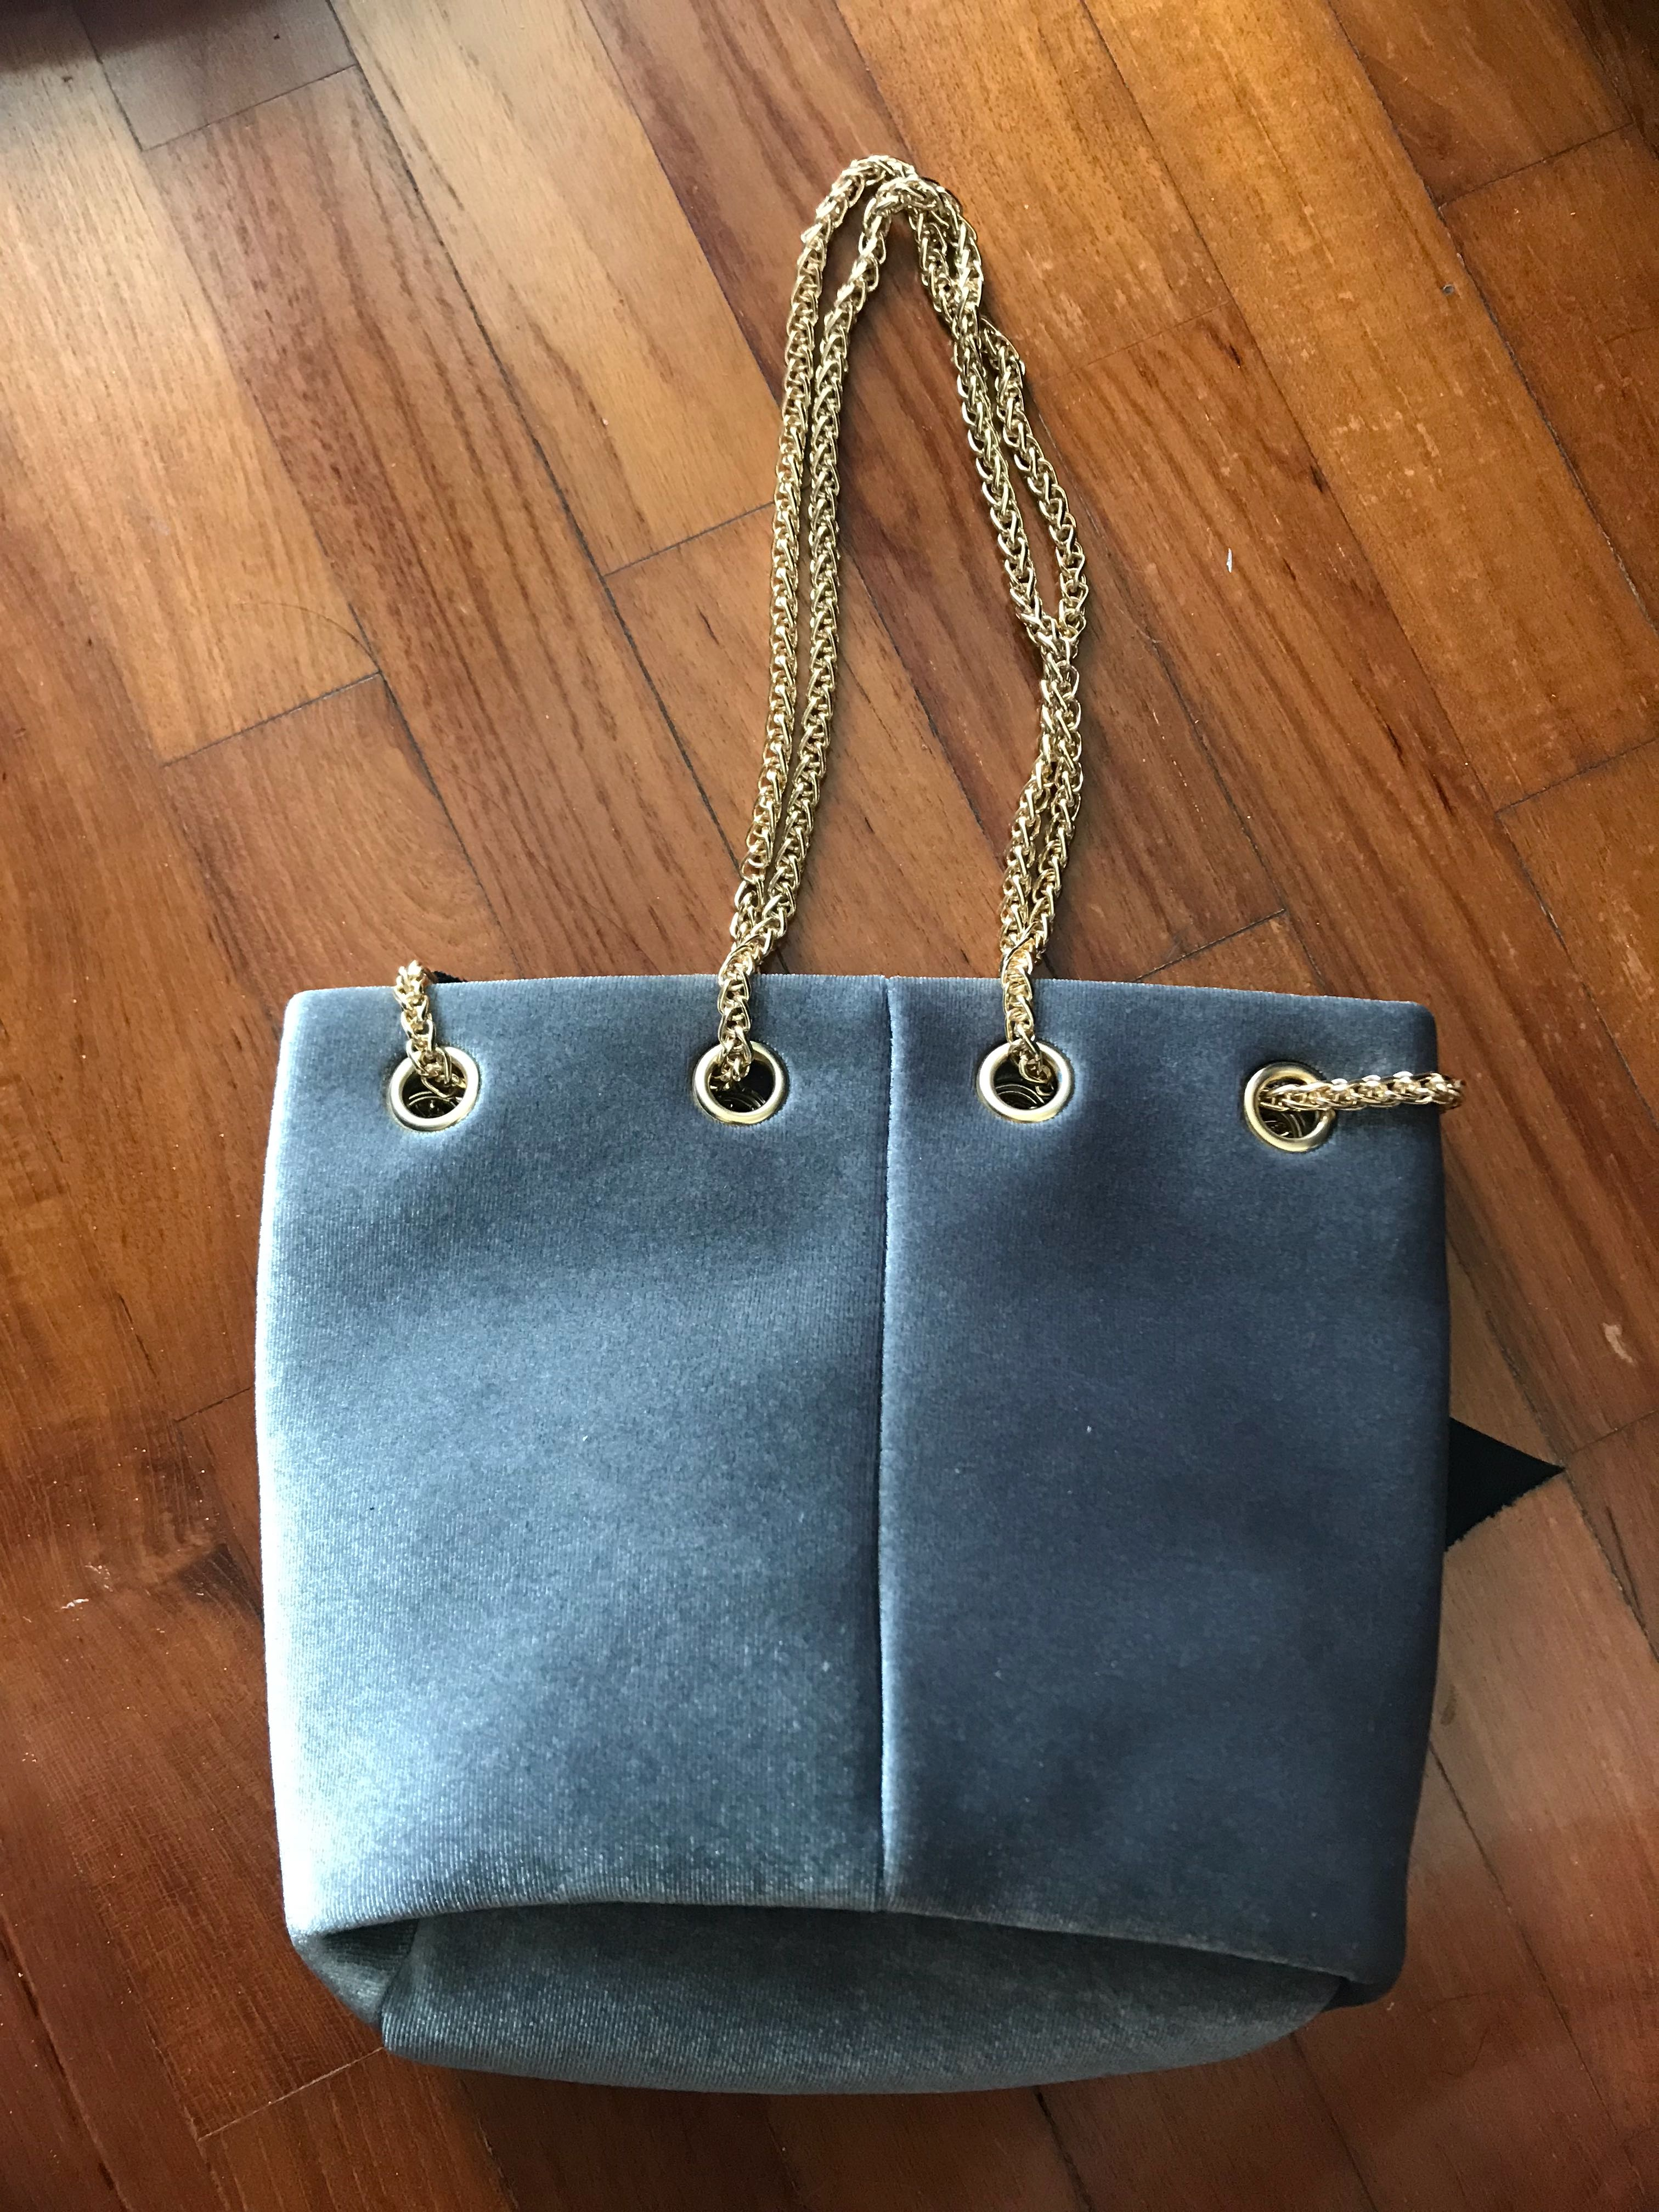 BNIB Small Hand Bag